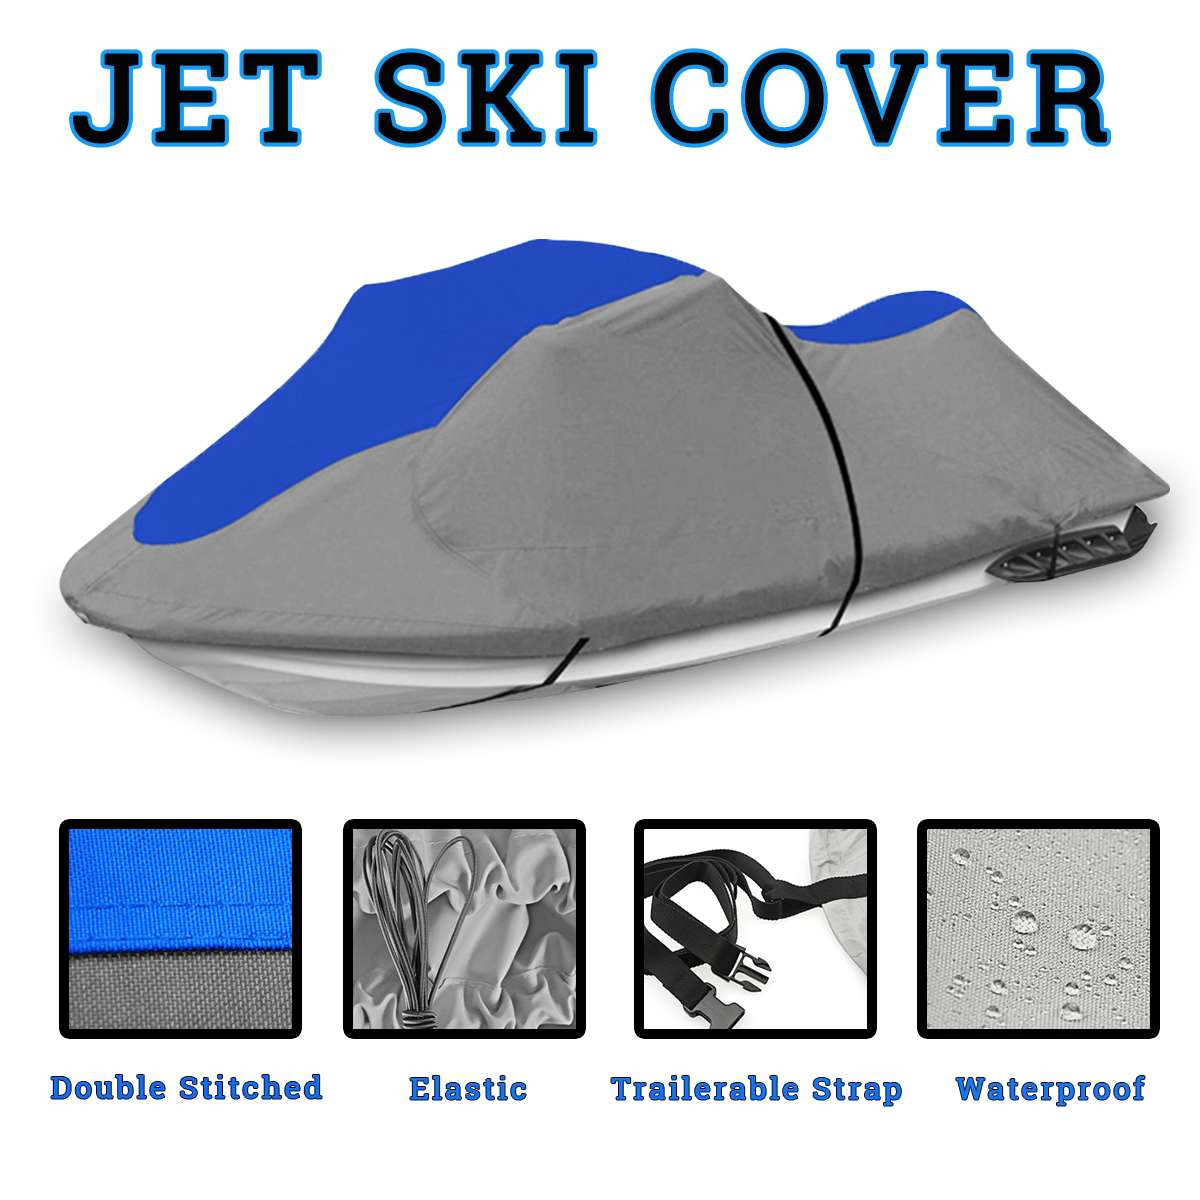 600D Solution Dyed 8.1oz Oxford Boat Cover For Universal Fit 3 person PWC Jet Ski, 116 to 135 / 137 to 140 UV Mildew Protected600D Solution Dyed 8.1oz Oxford Boat Cover For Universal Fit 3 person PWC Jet Ski, 116 to 135 / 137 to 140 UV Mildew Protected